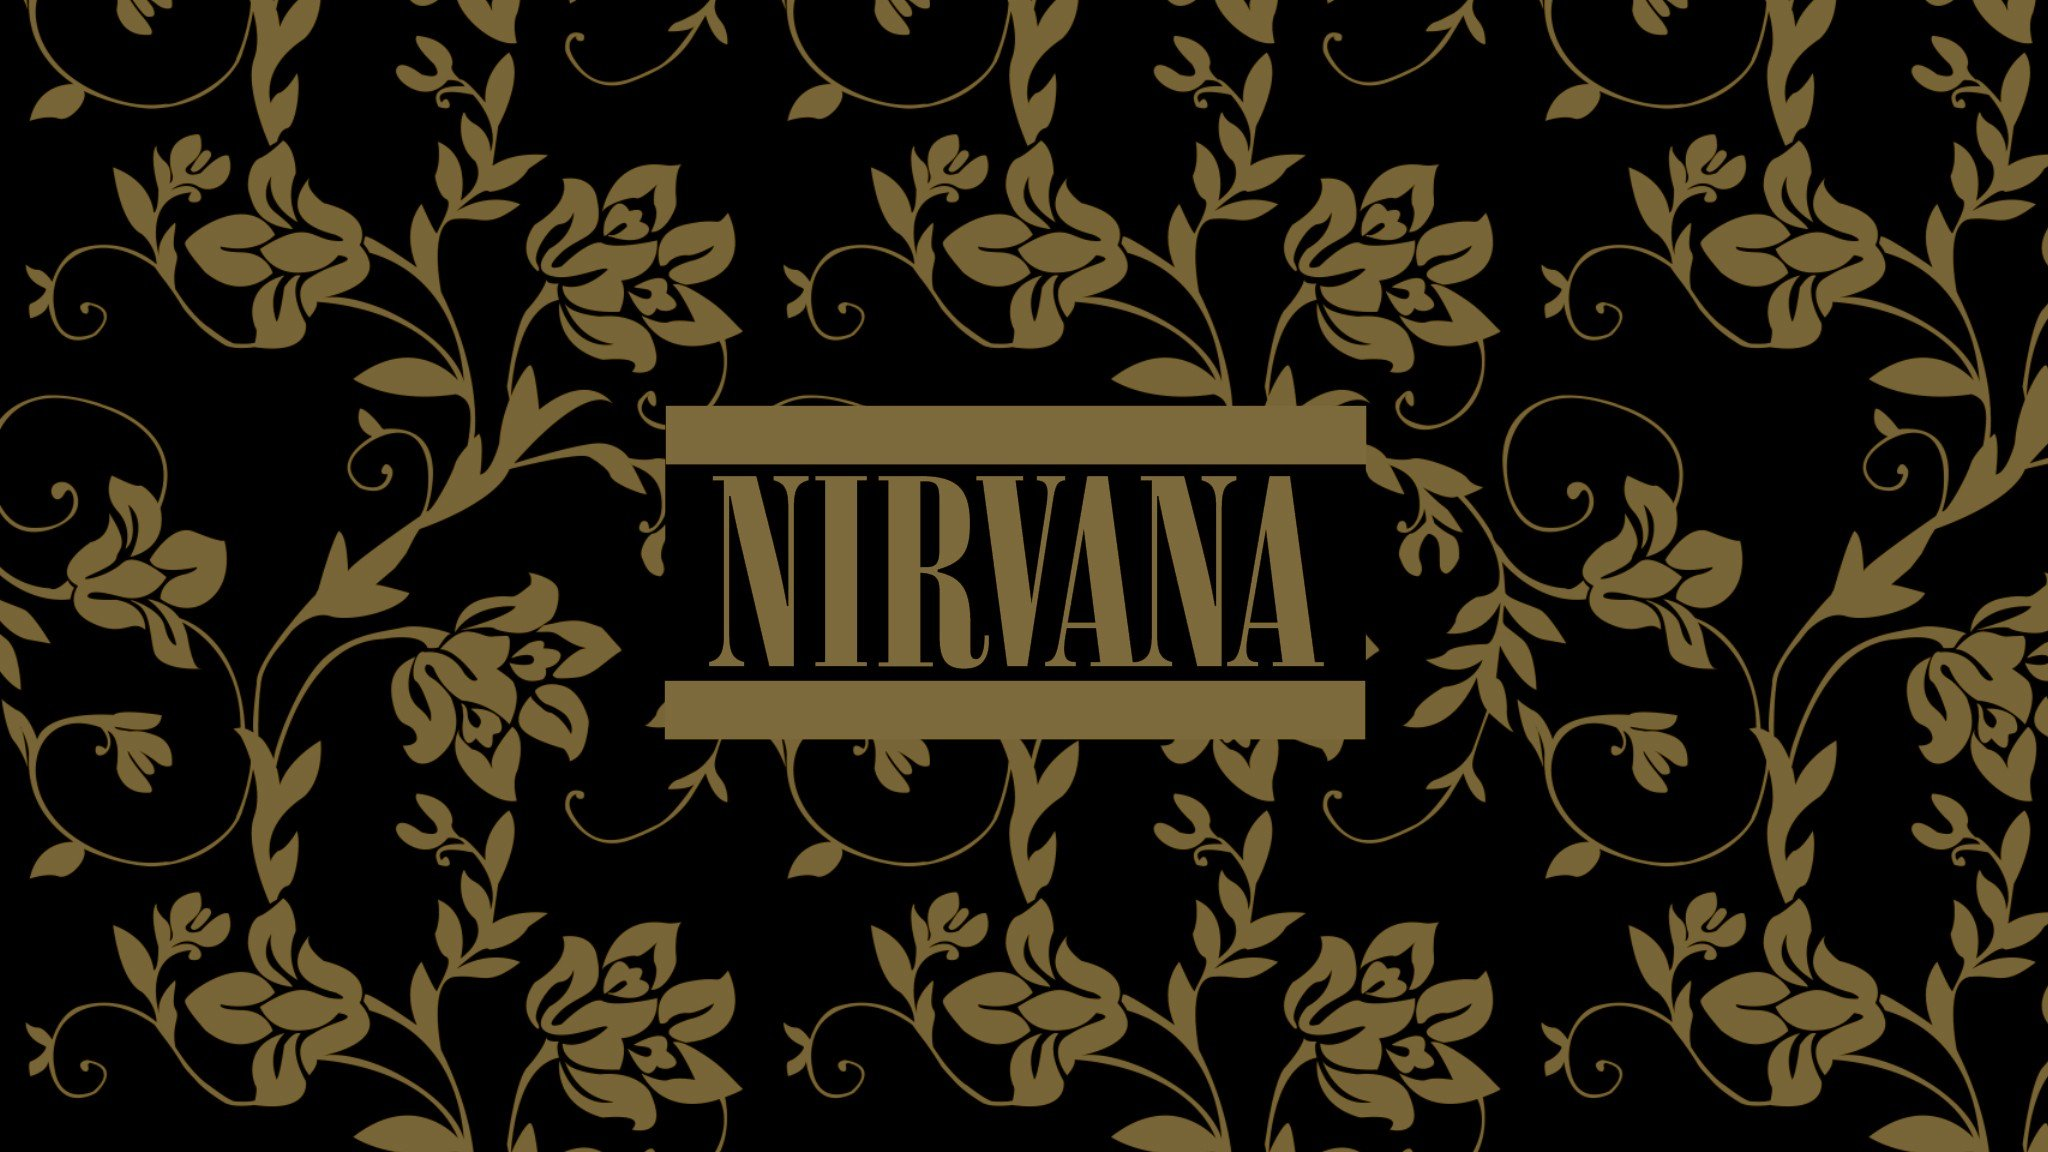 flowers patterns typography Nirvana music bands floral black 2048x1152